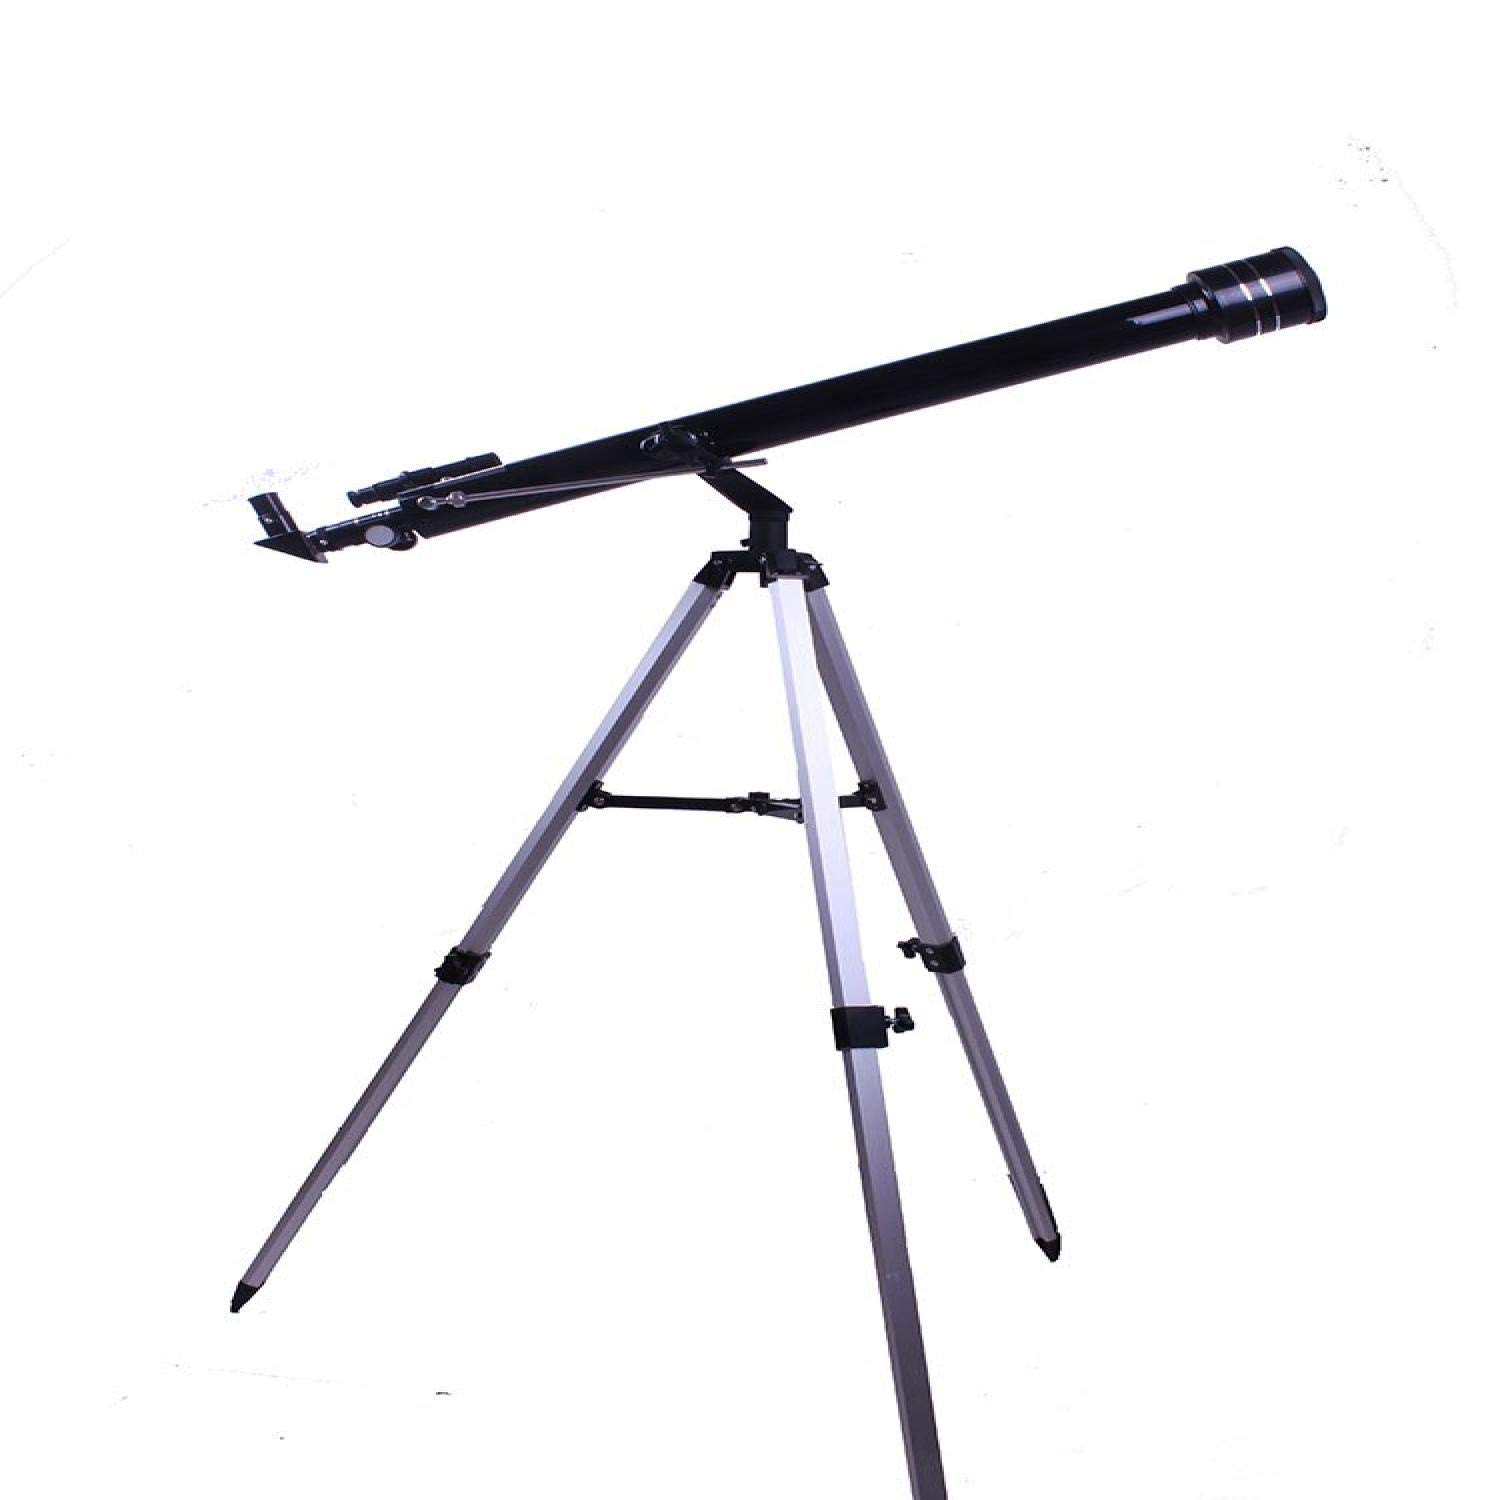 Quality 675 Times Zooming Outdoor Monocular Space Astronomical Telescope with Portable Tripod Spotting Scope 900/60m Telescopio by Afra Coffey Bb